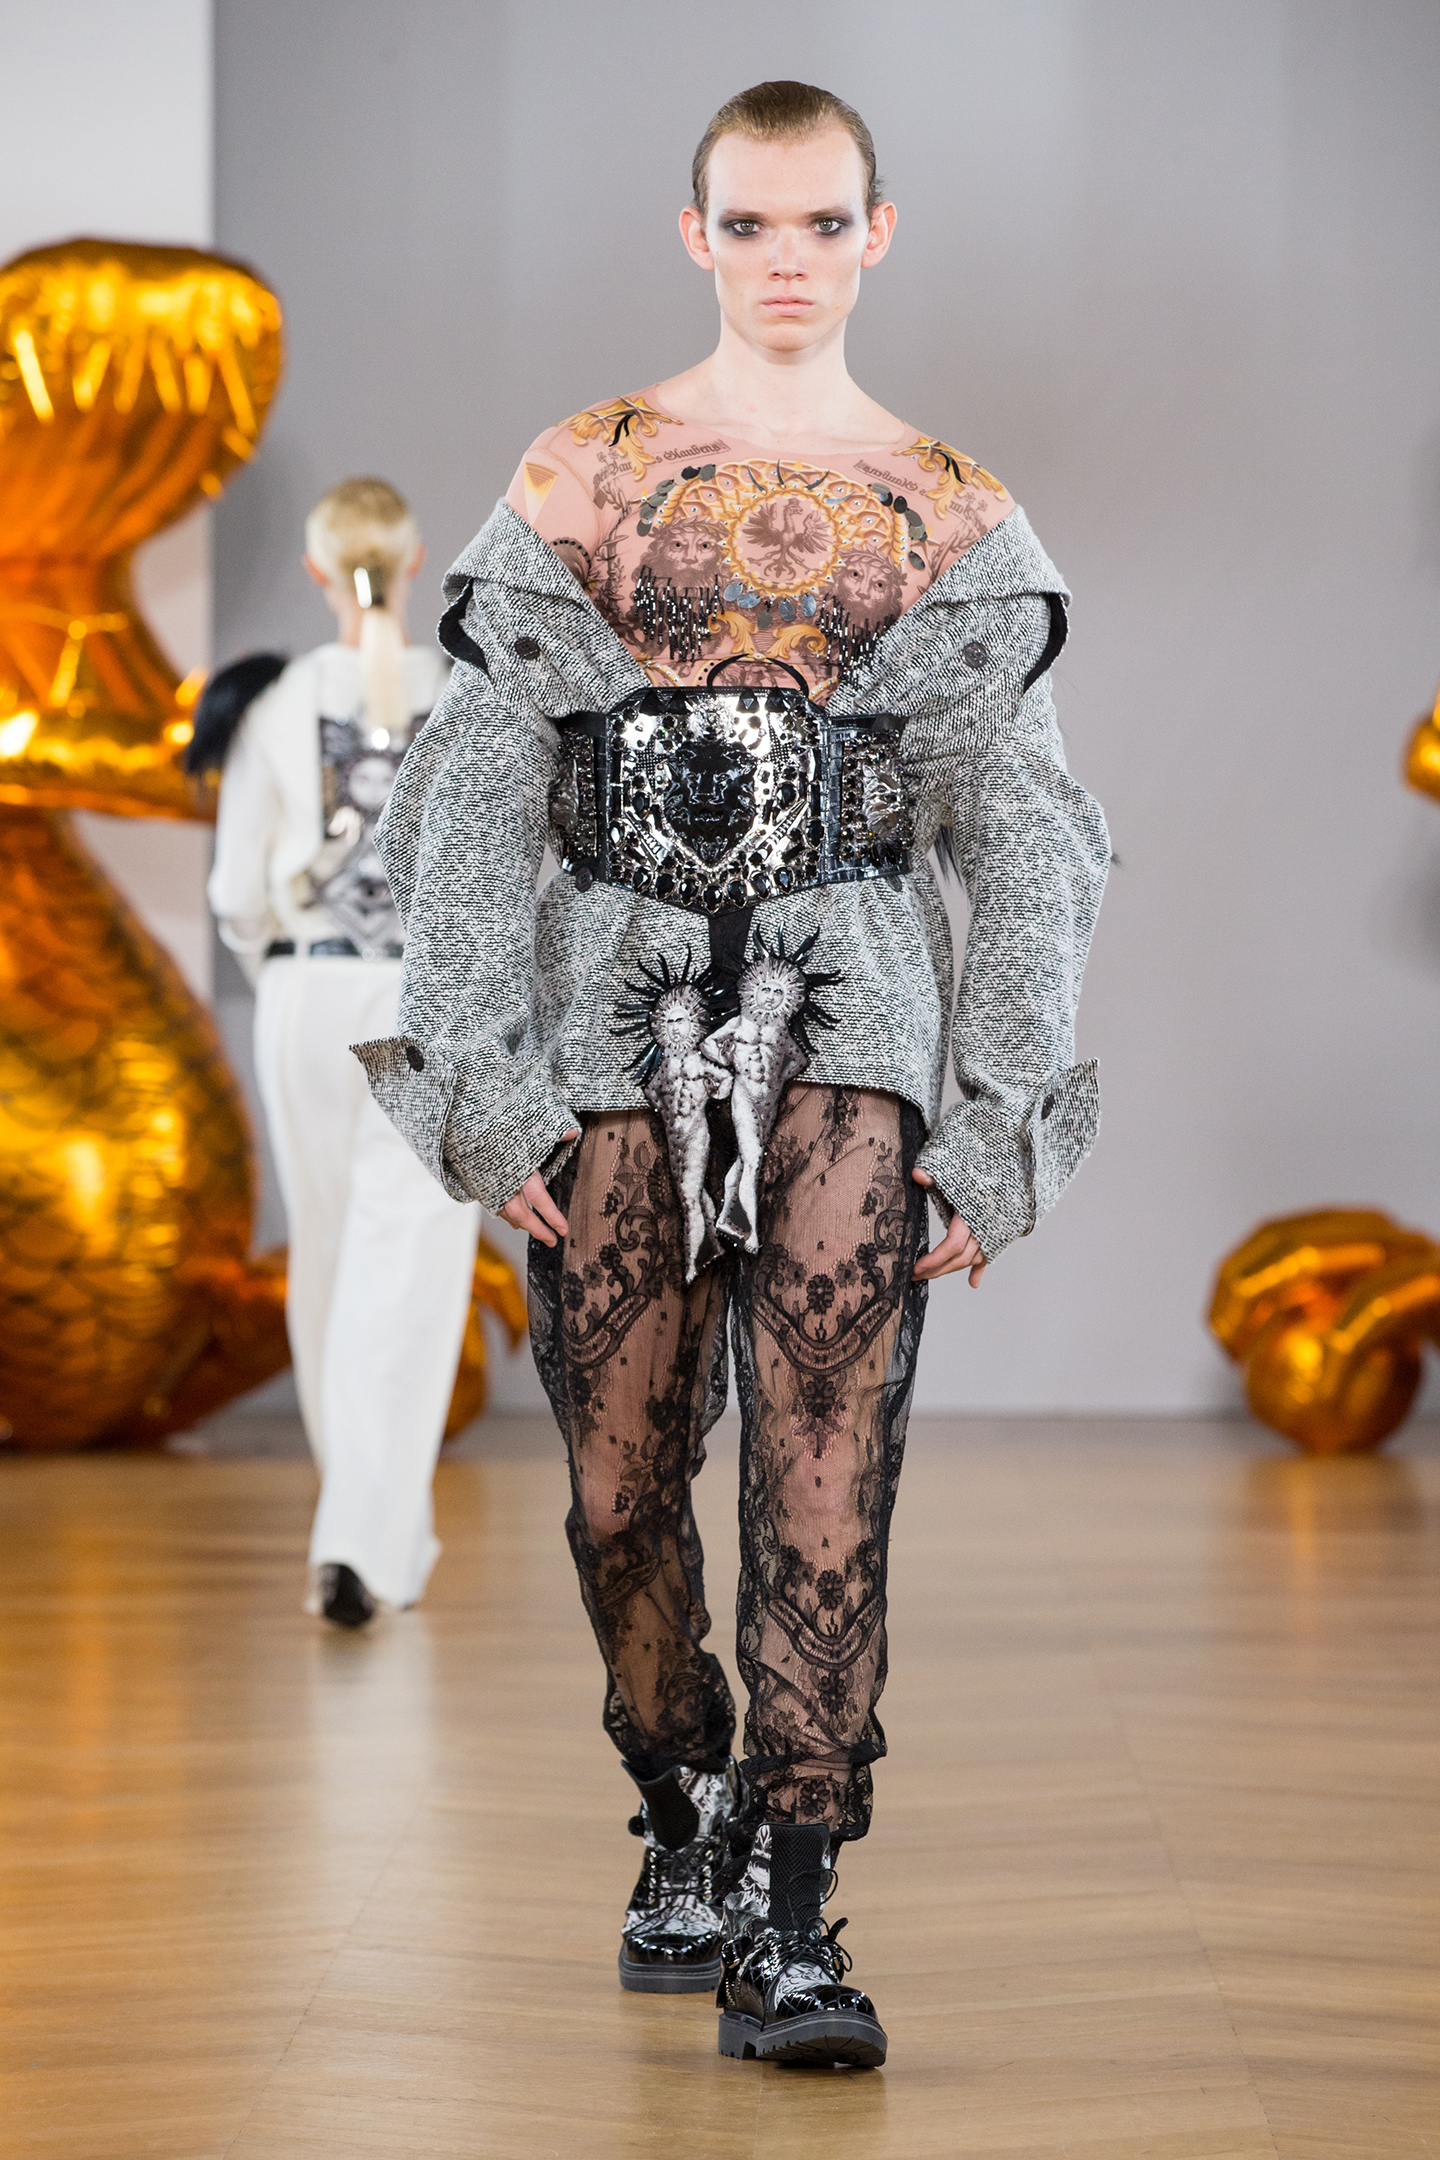 Boy male model wearing couture coat and lace pants crystal belt on aura tout vu